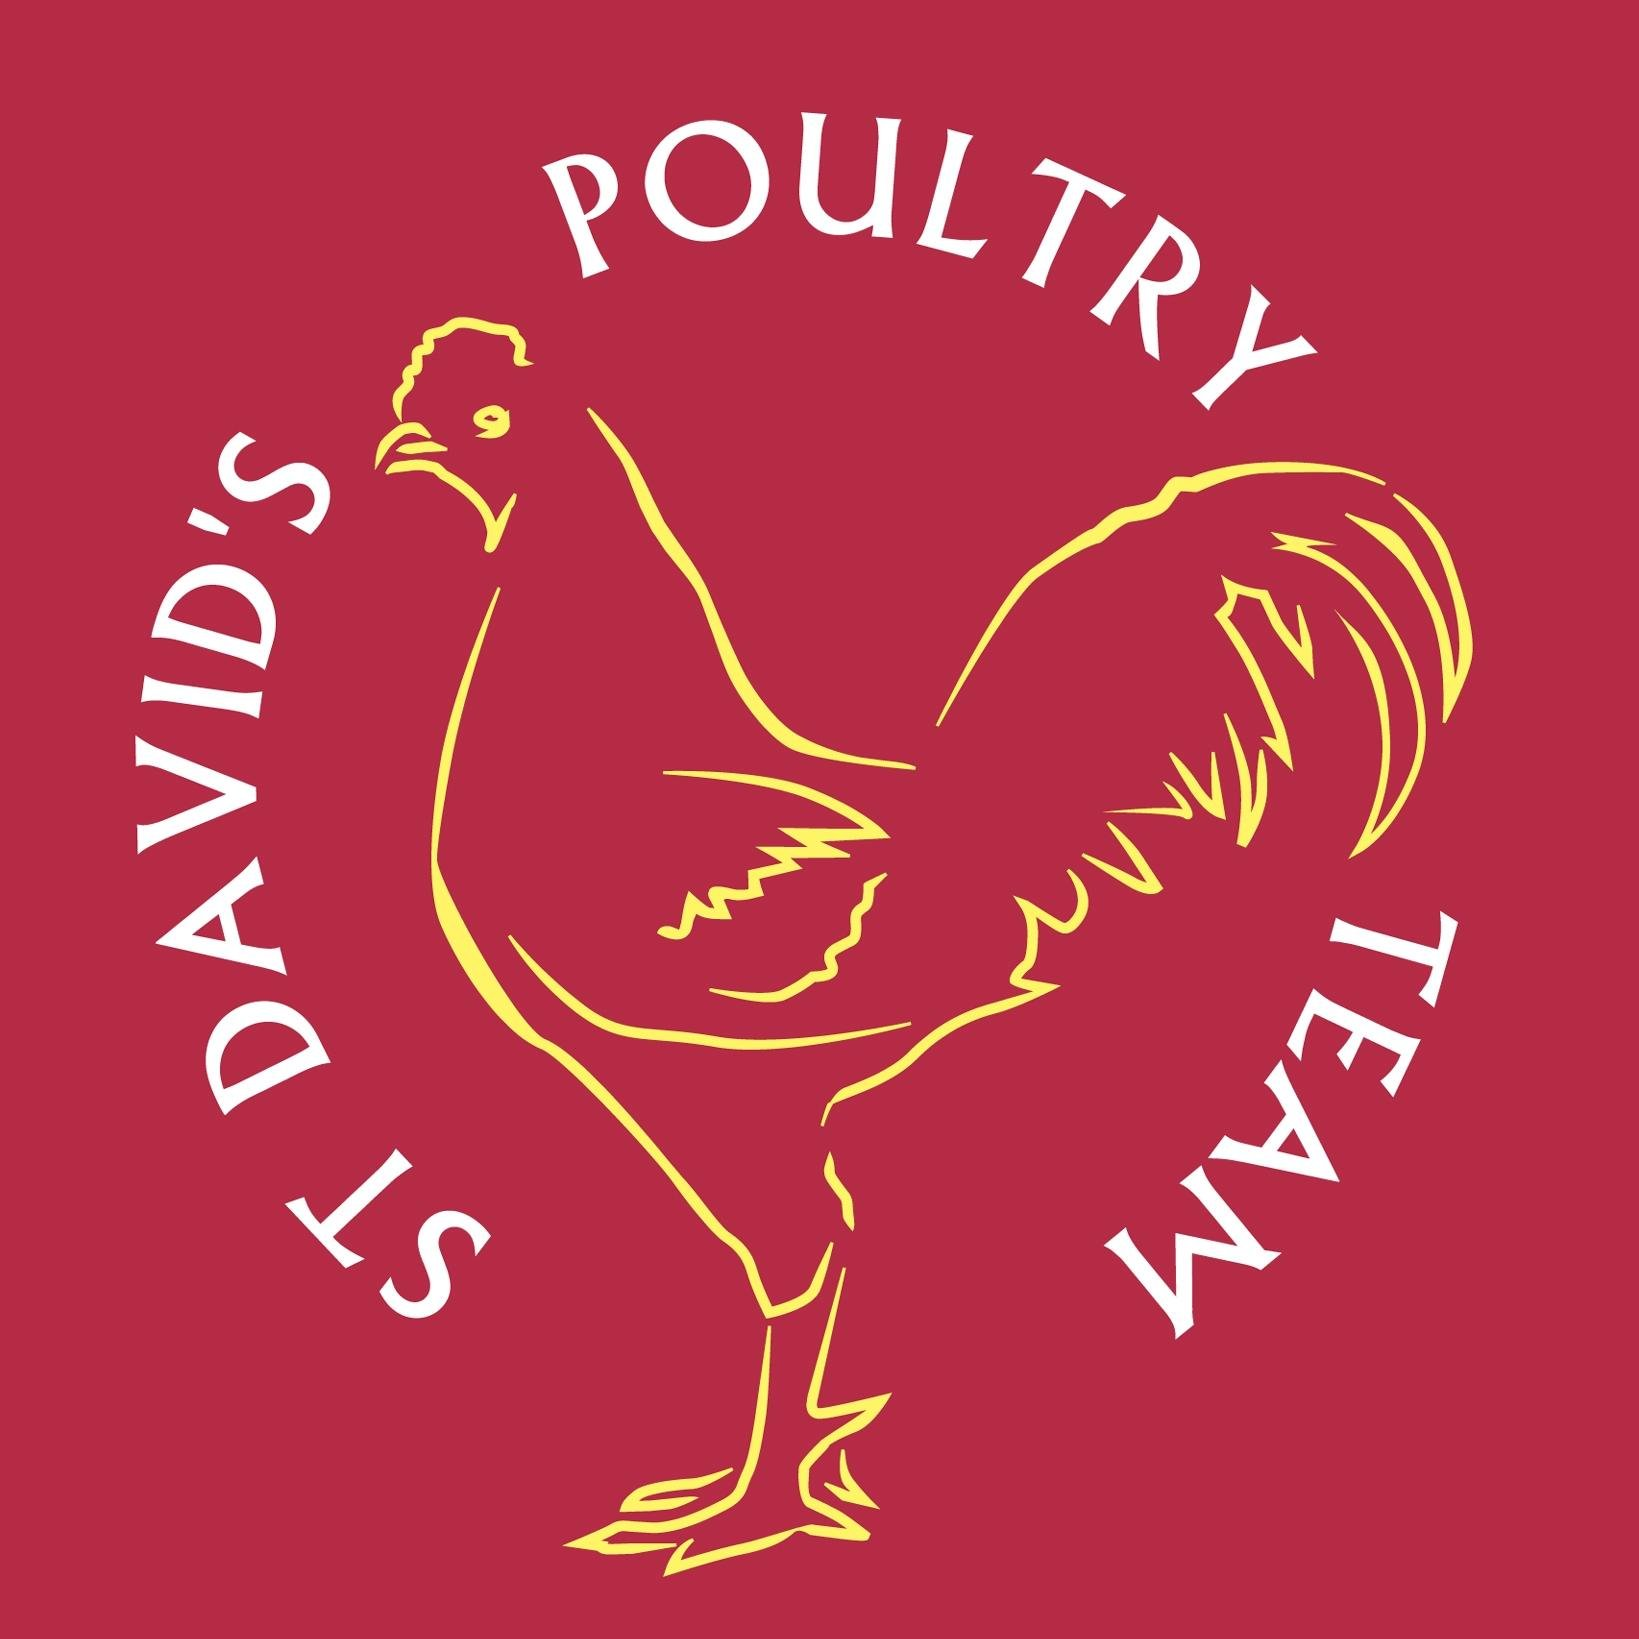 St David's Poultry Team logo